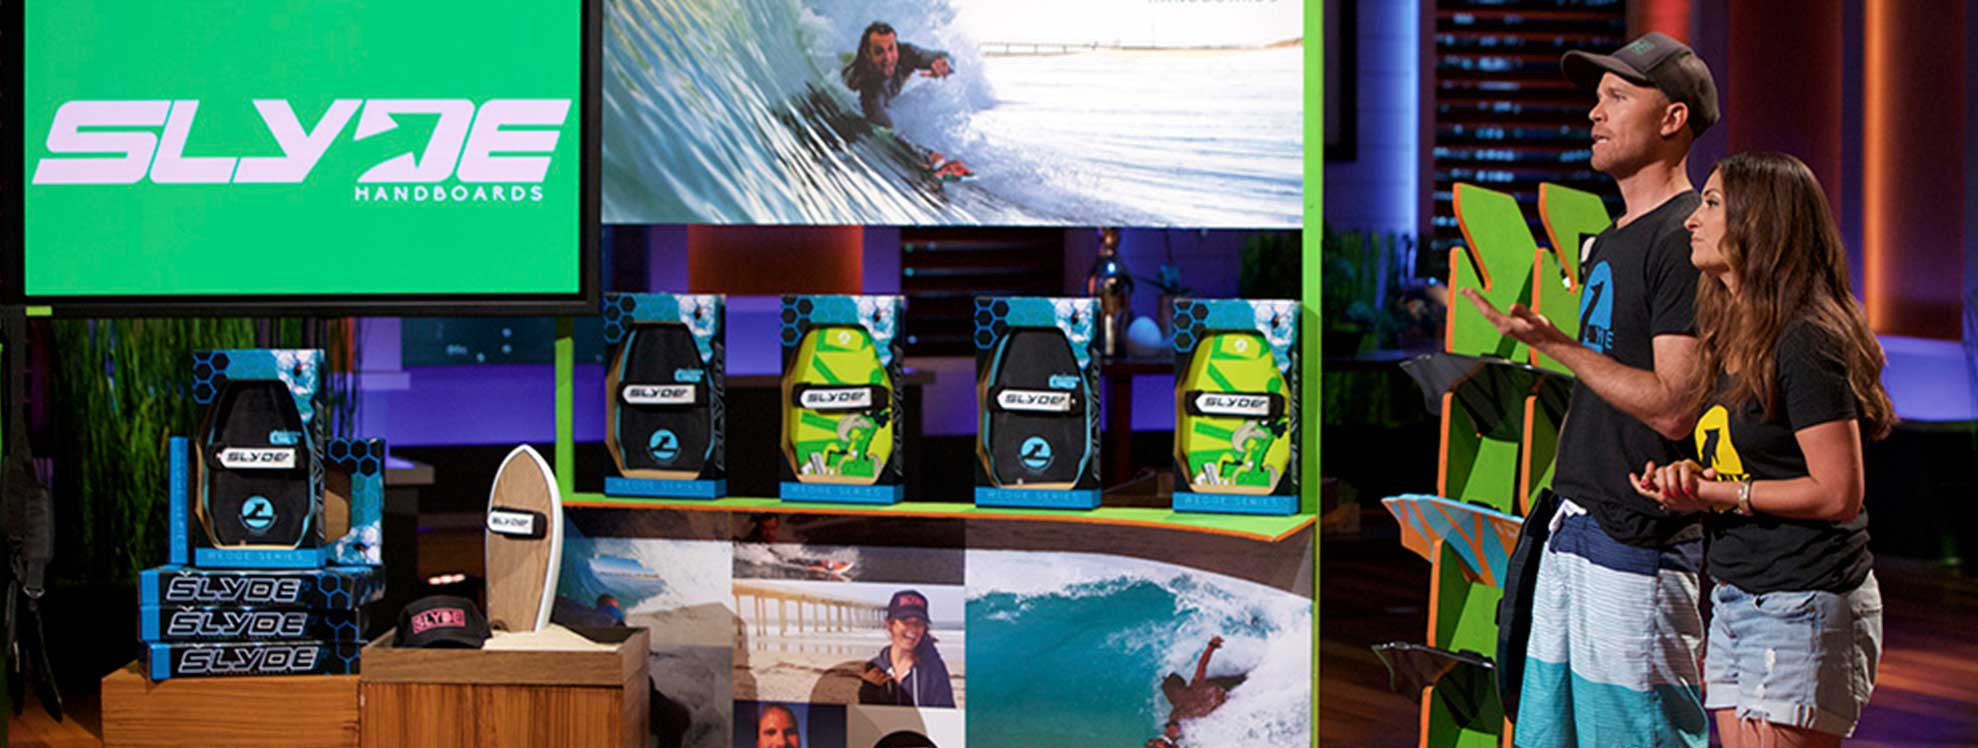 Slyde Handboards Pitch On Shark Tank Over 73,000 Youtube Views